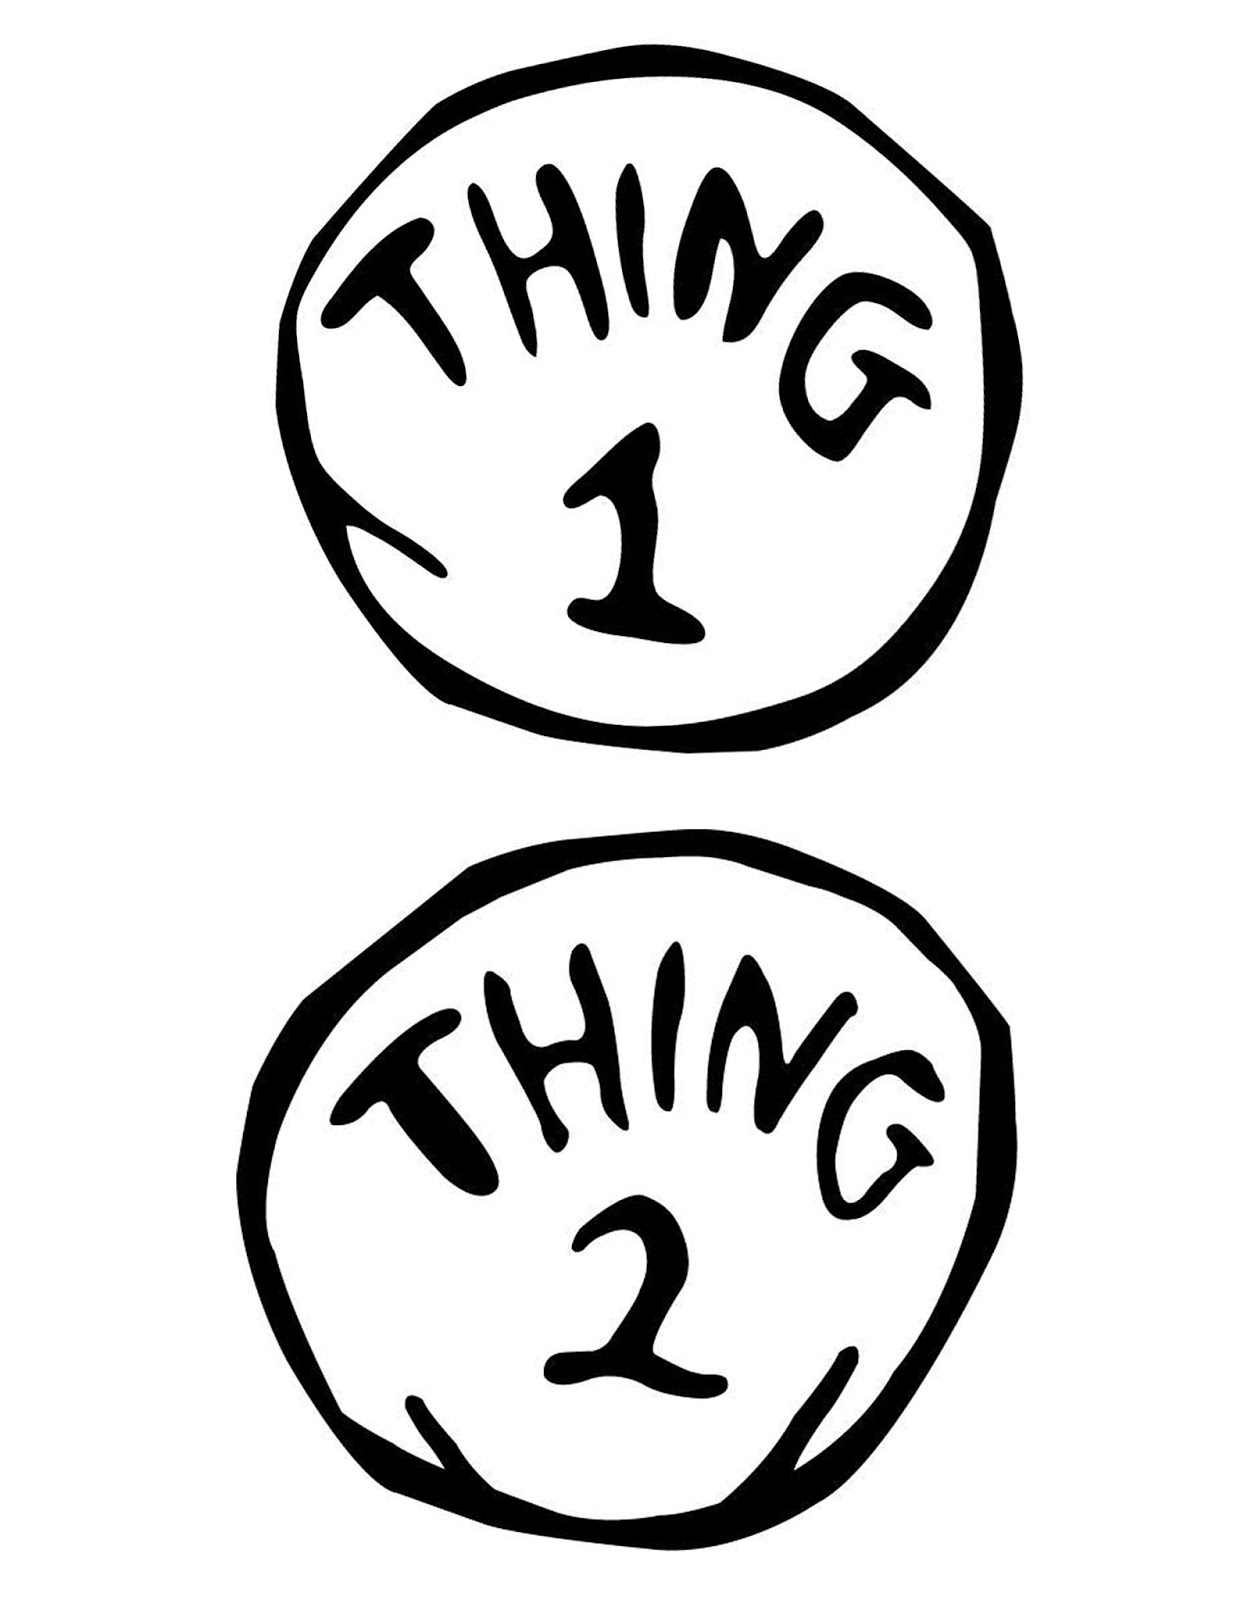 photo regarding Thing 2 Logo Printable called Matter 1 And Factor 2 Printable No cost obtain easiest Matter 1